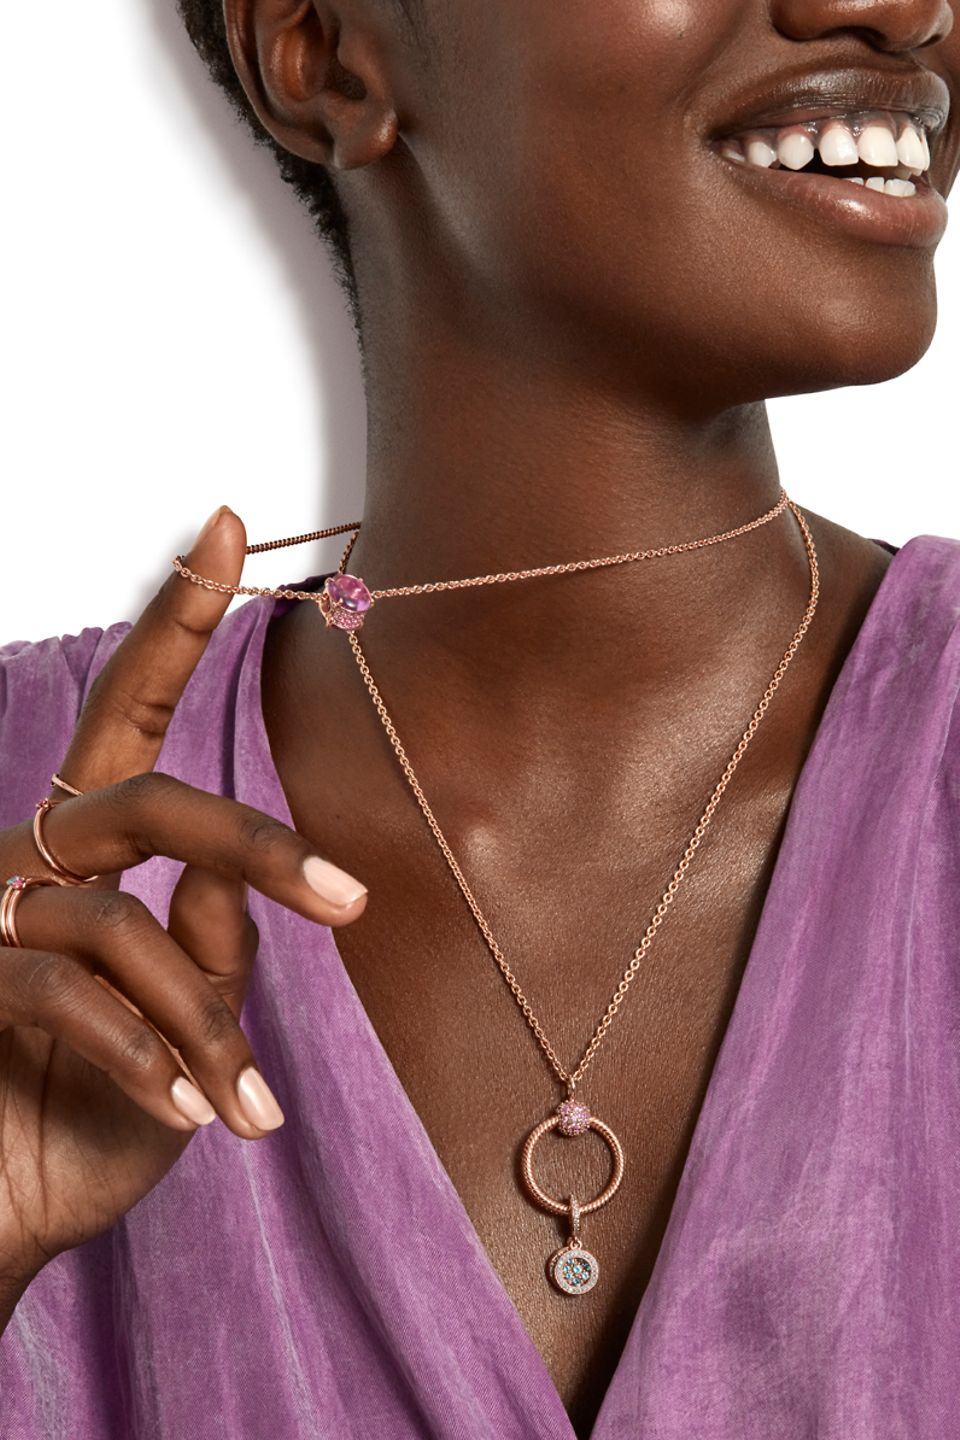 Model wearing Pandora Colours rings and charms on a necklace and pendant.